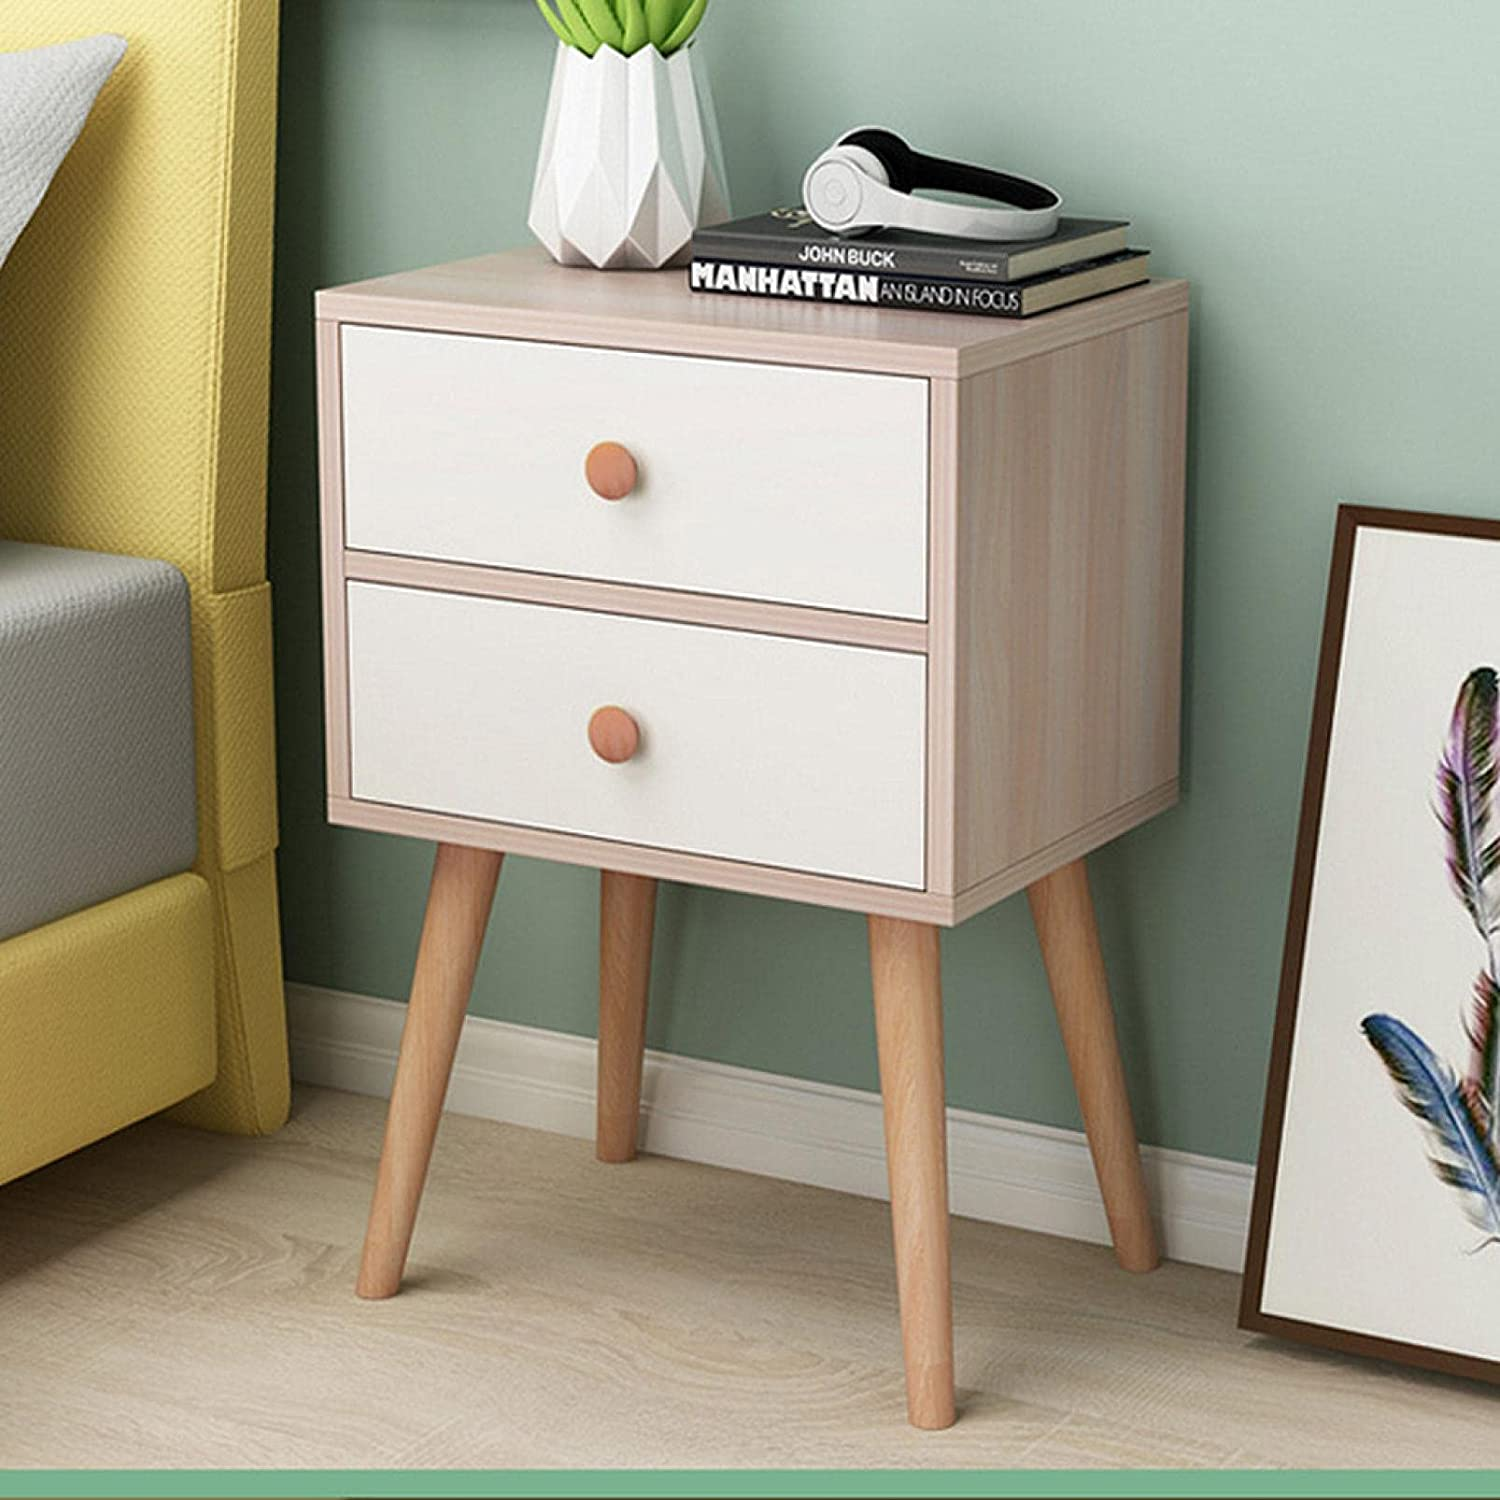 MTDHKX End Side Table Nightstand Wood Drawer with Storage Now on sale Award -Solid